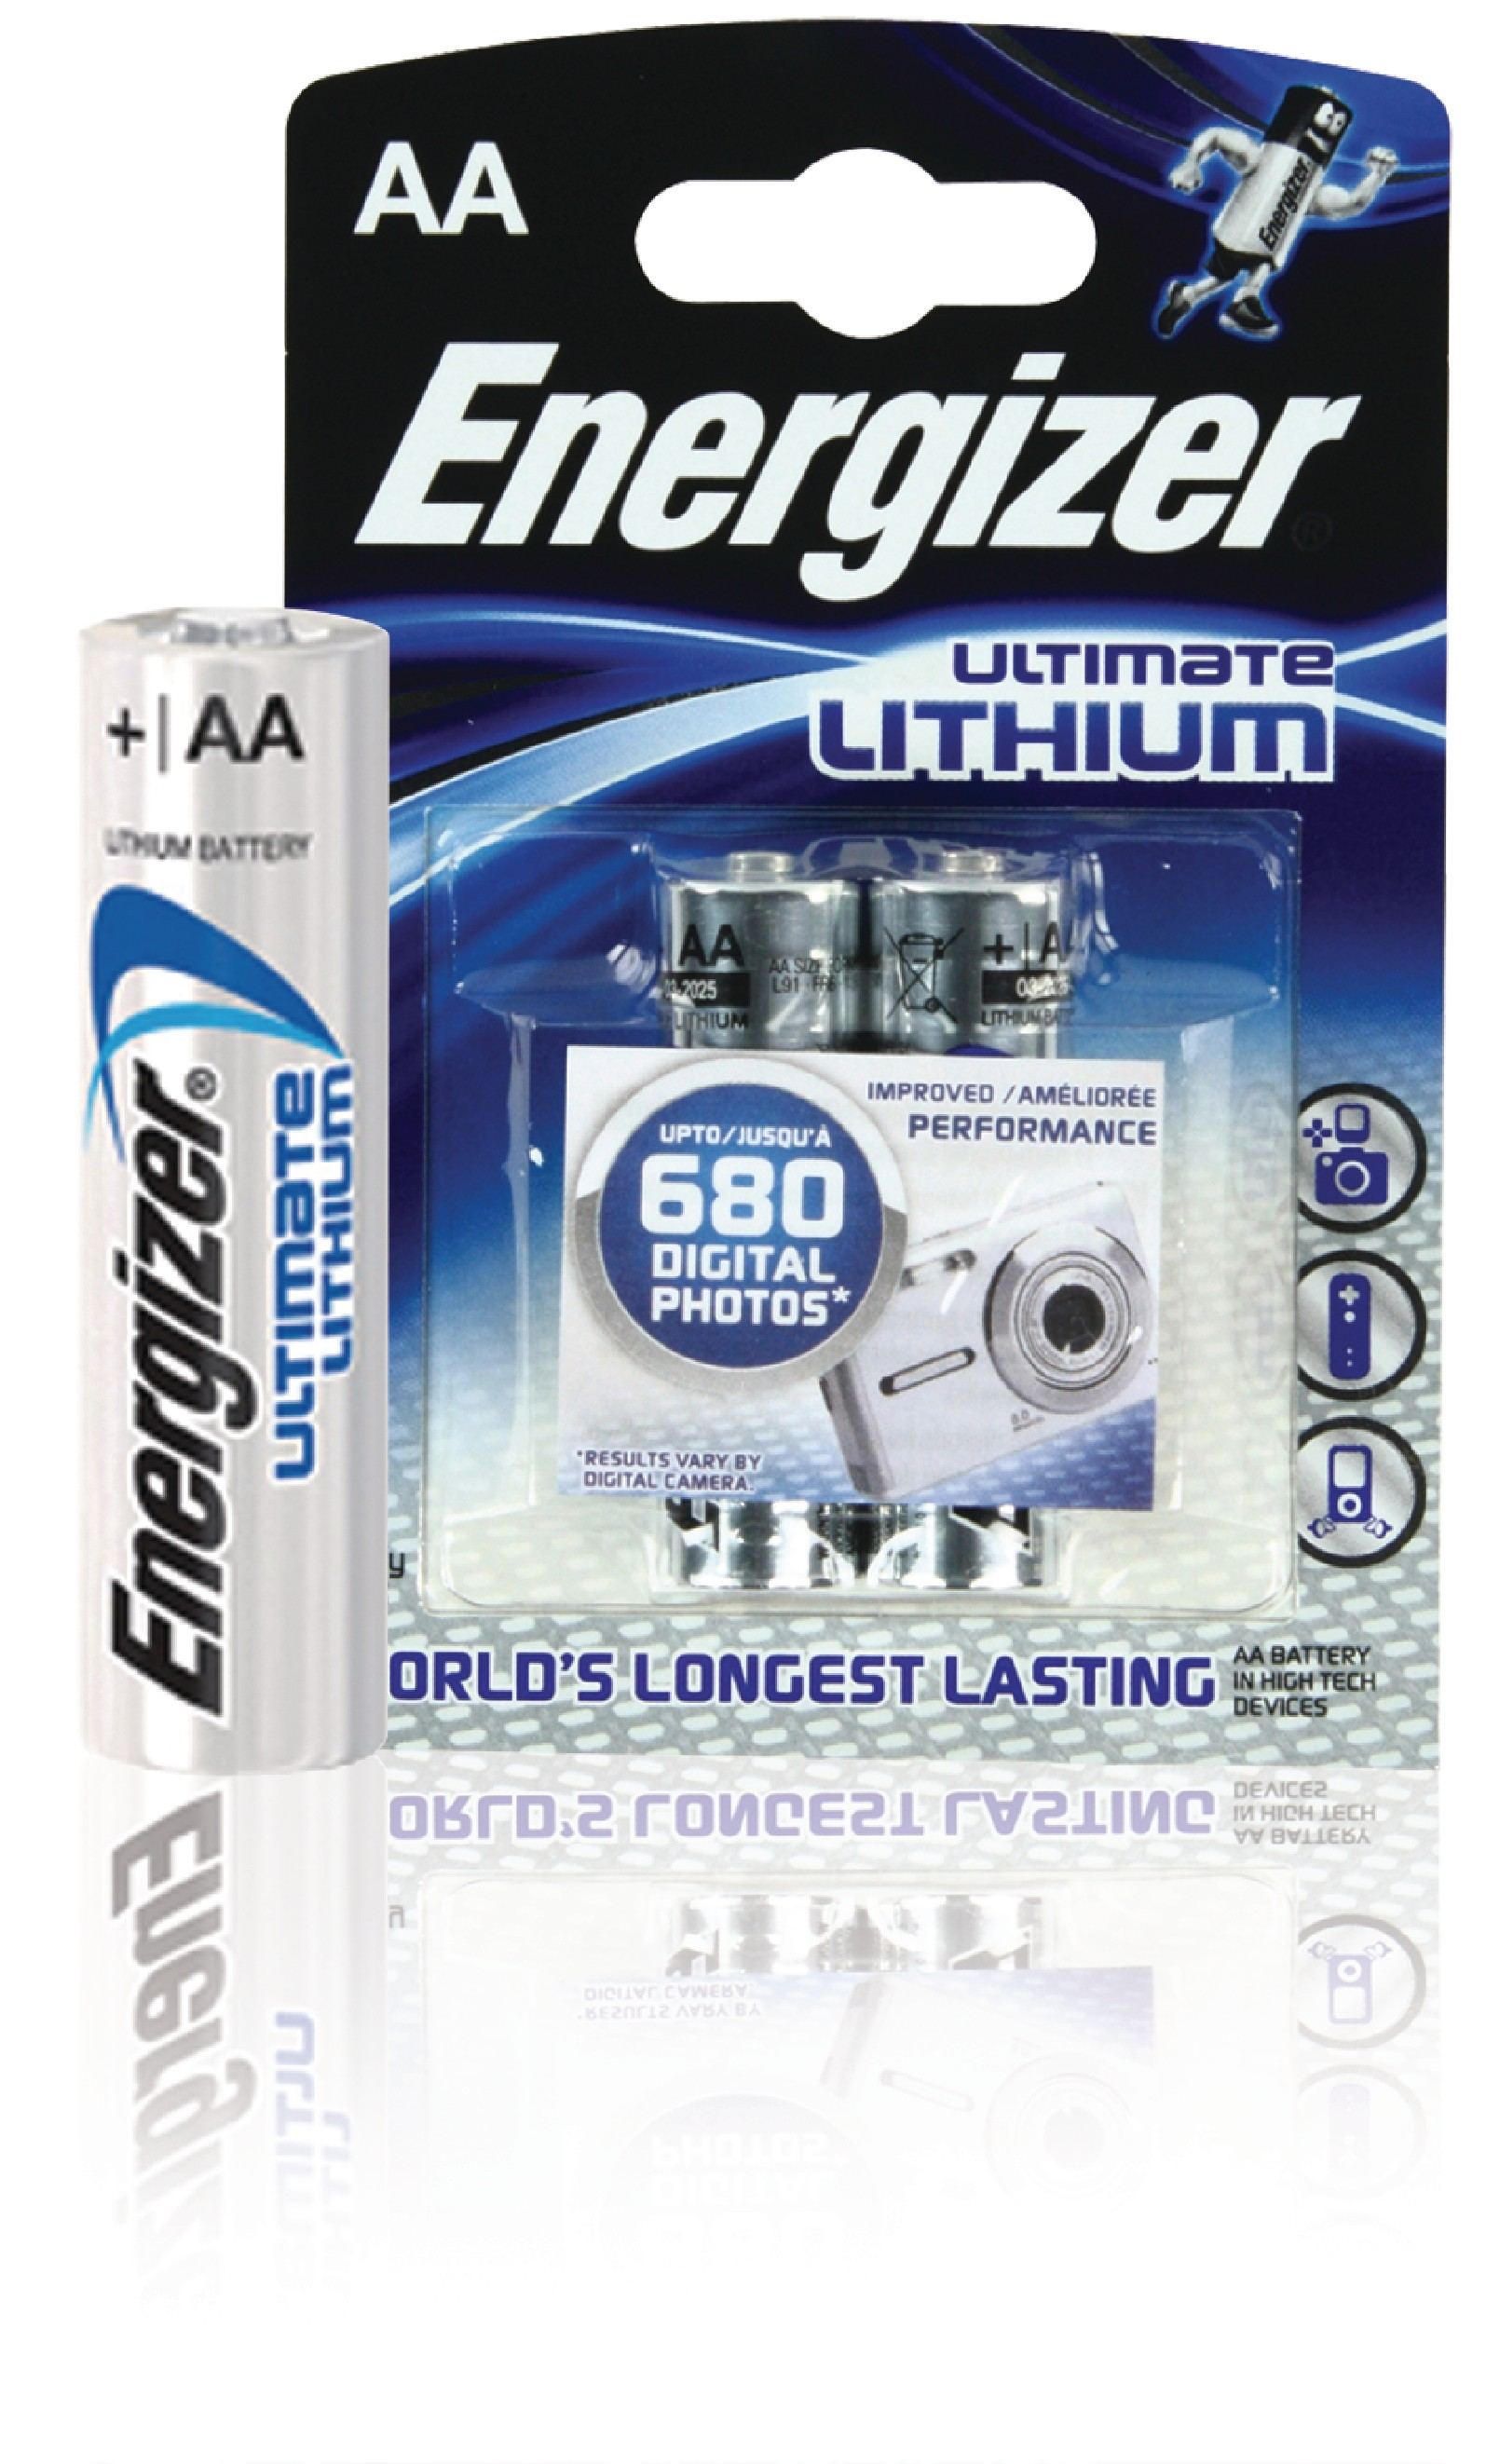 Lithiová baterie Energizer Ultimate AA 1.5V, 2ks, ENLITHIUMAAP2